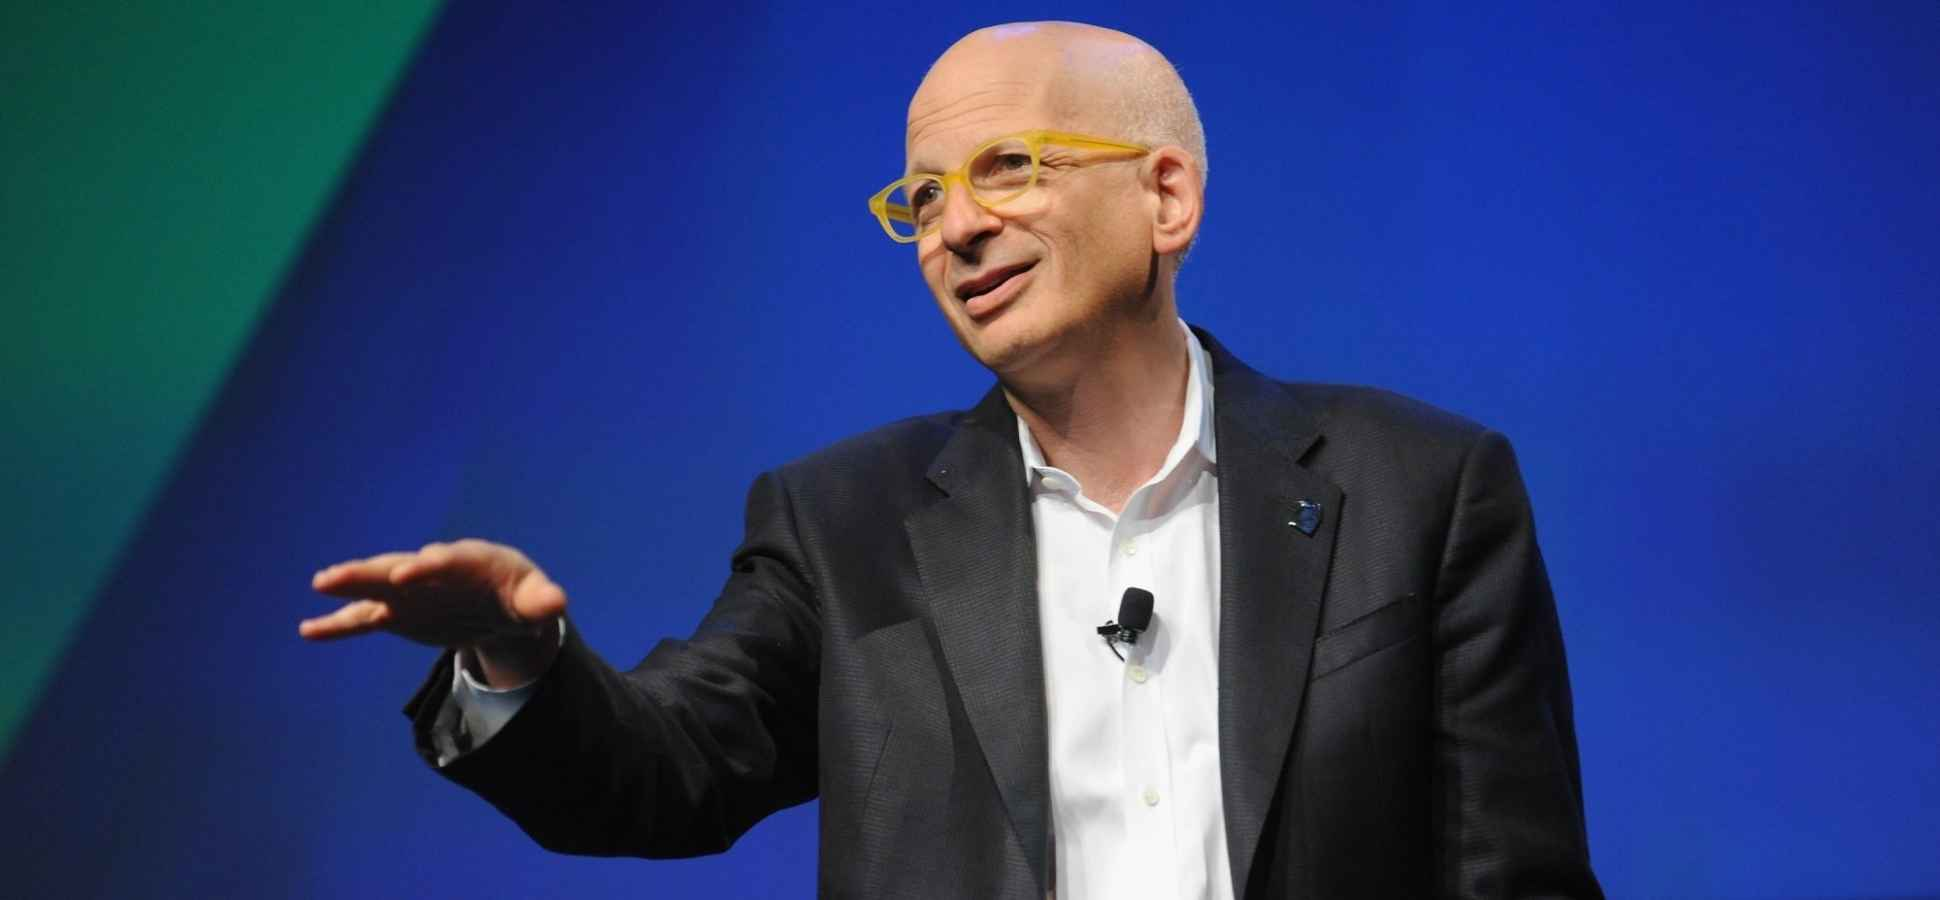 Millionaire Seth Godin Perfectly Sums Up His Secret for Success in Just 4 Words